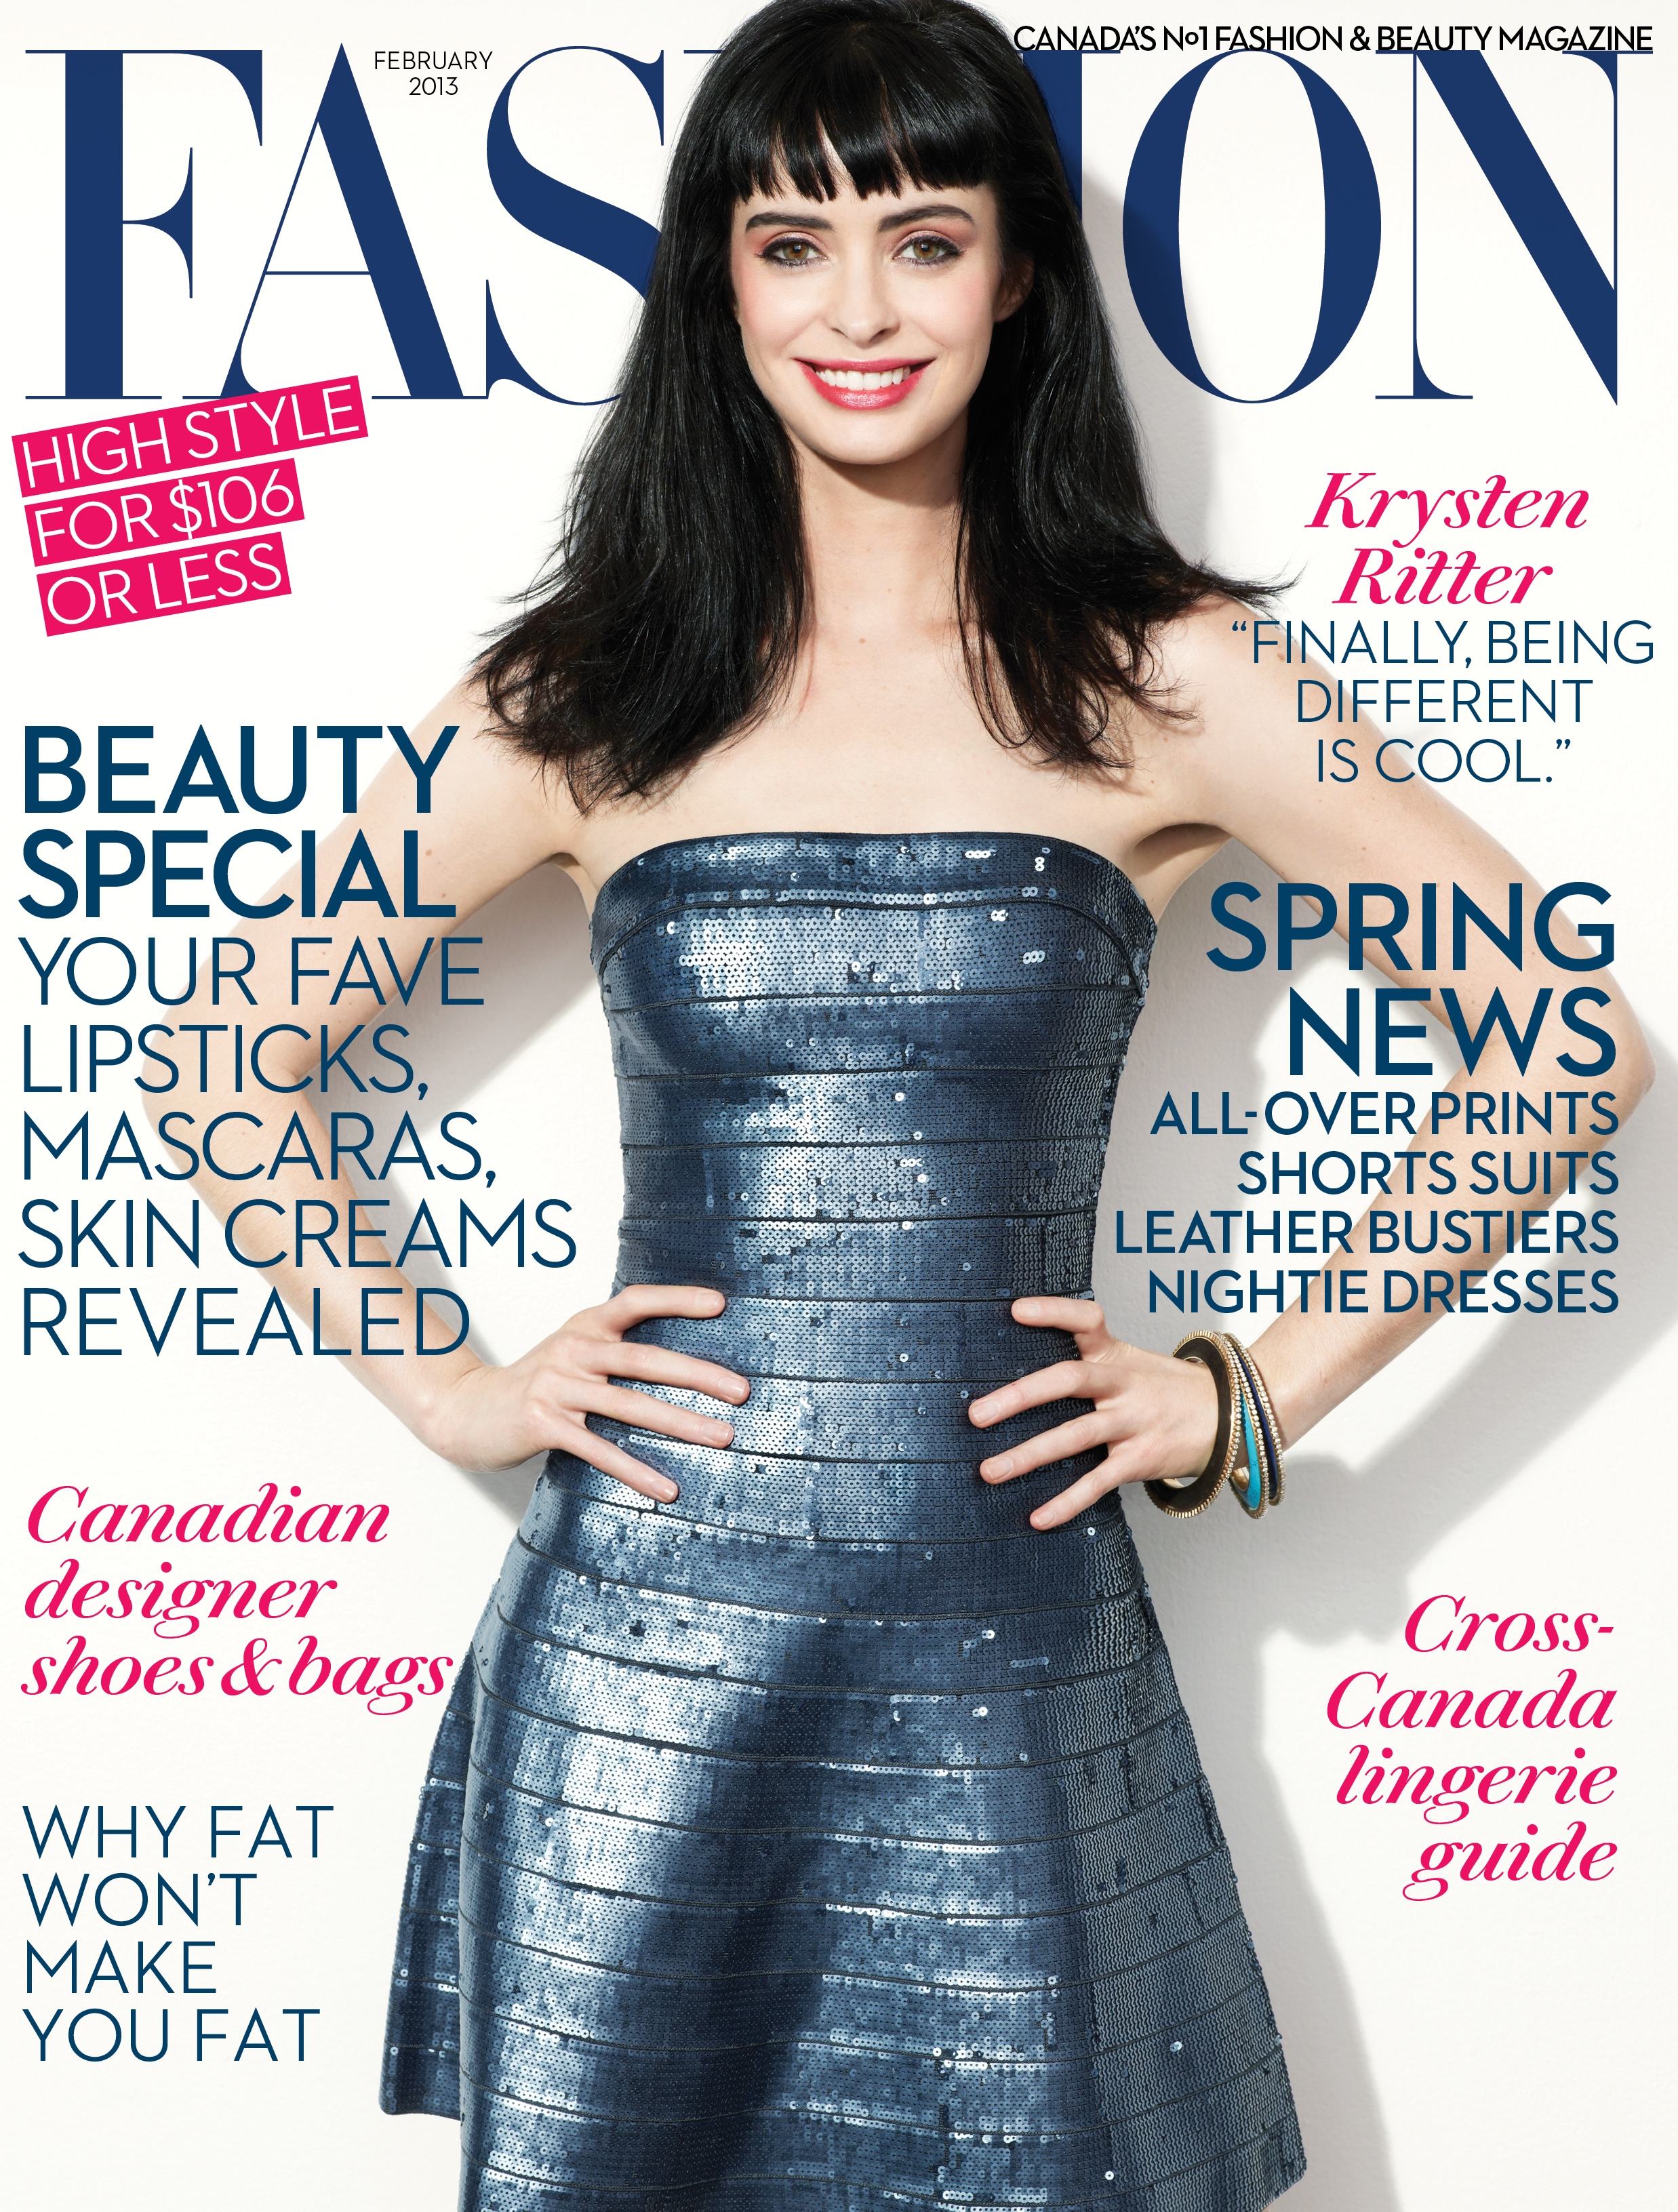 Fashion Magazines Look To Familiar Faces For Cover Models: Krysten Ritter Cover